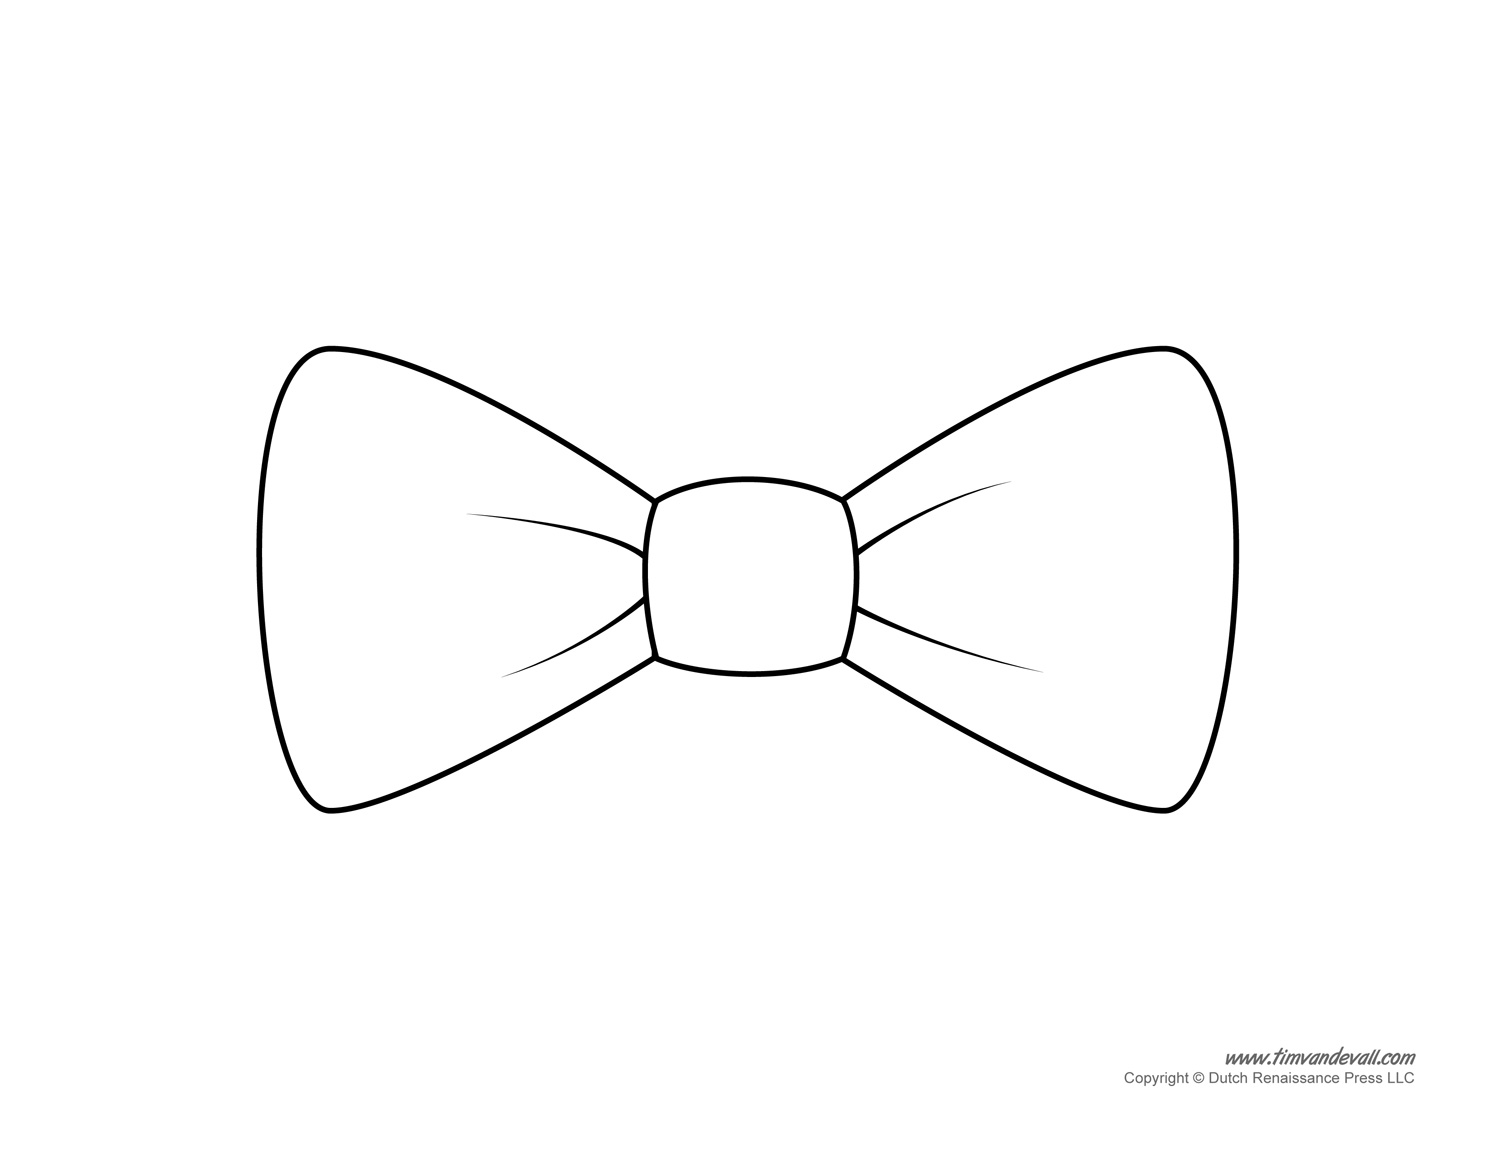 Tim van de vall comics printables for kids for Template of a bow